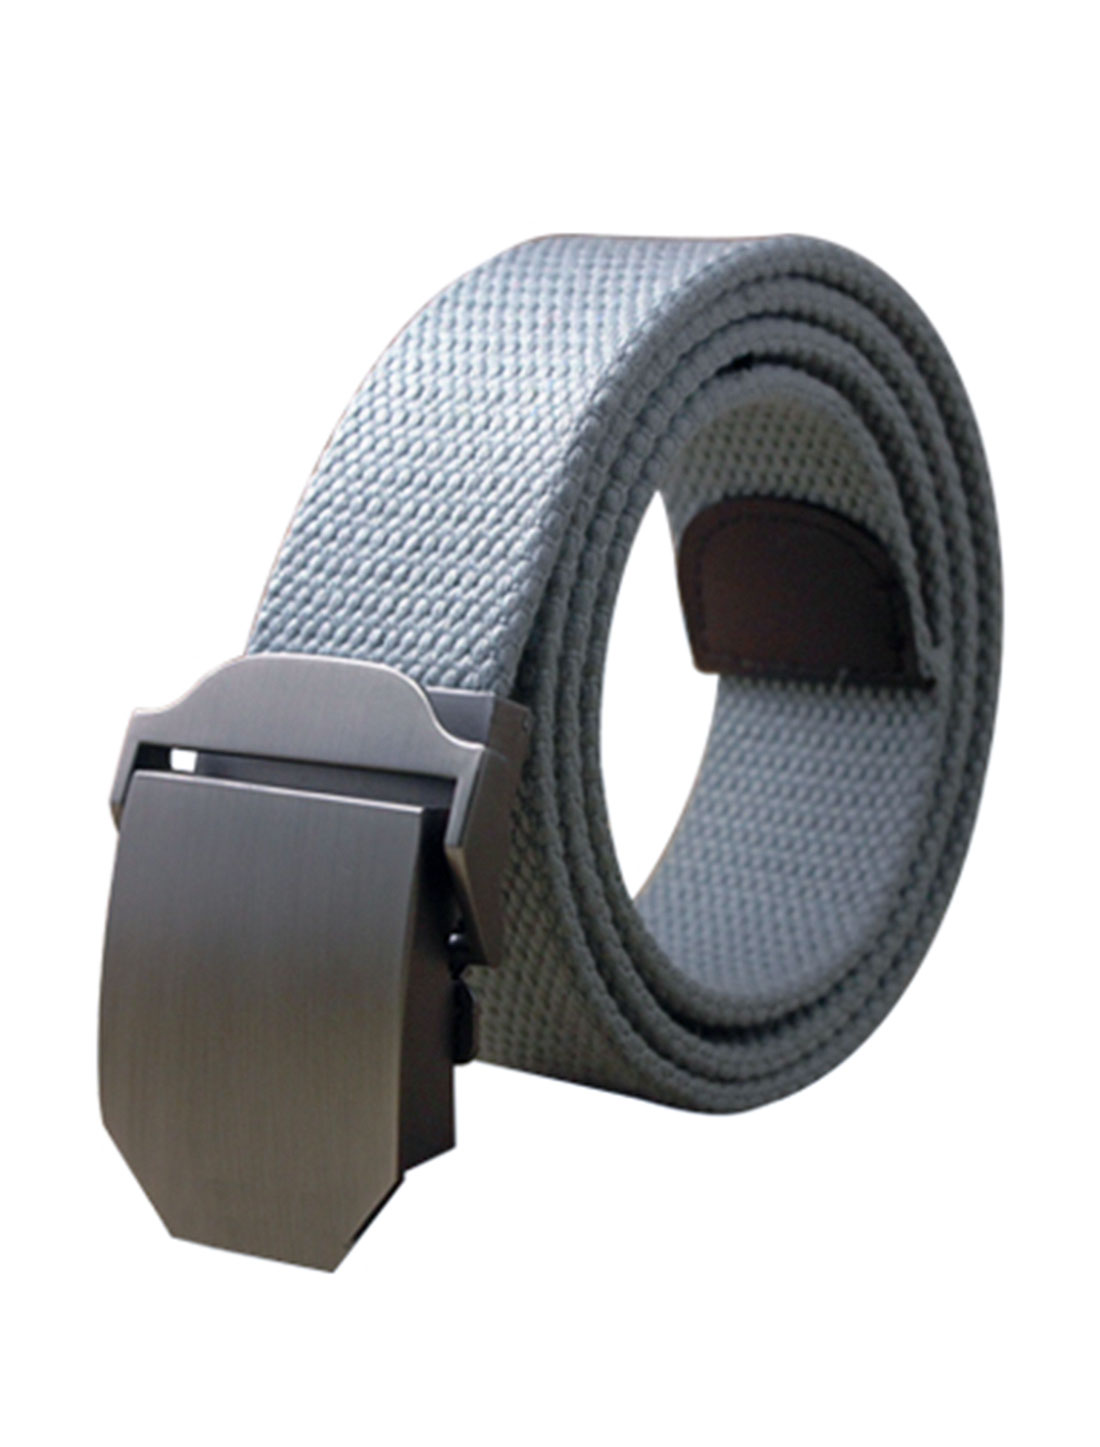 "Men Canvas Automatic Buckle Adjustable Holeless Belt Width 1 1/2"" Light Gray"